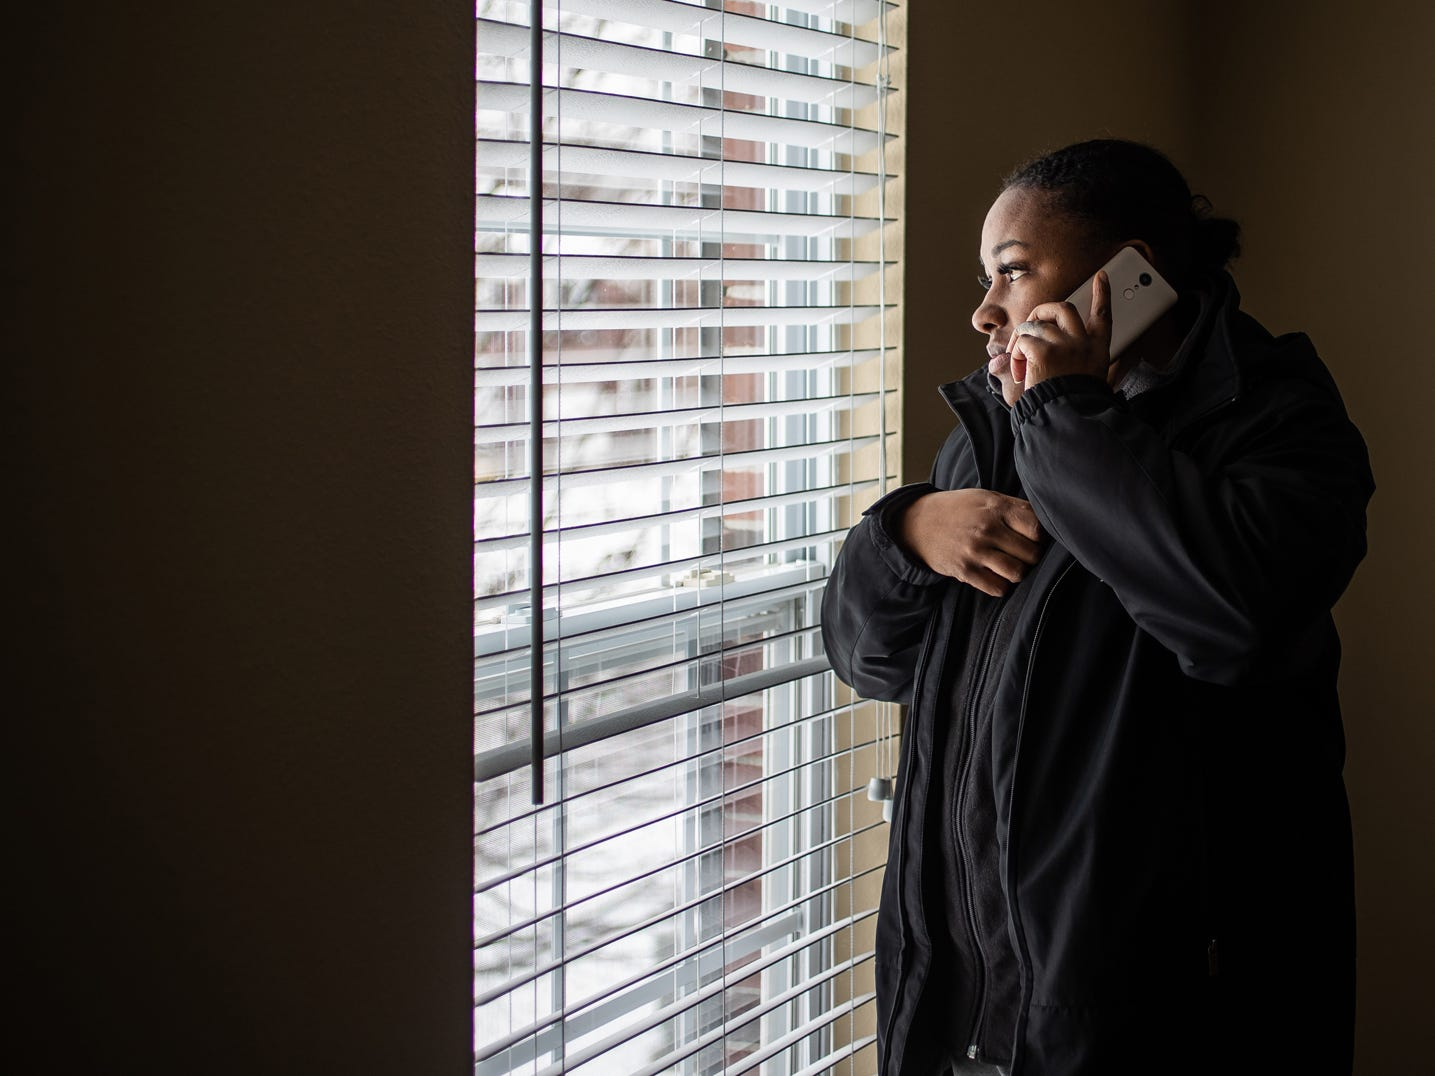 """Latasha Sanders takes a look out of a second floor window in the home she hopes to rent on Wednesday, Feb. 20, 2019. """"I mean, I like it. It's more than what I expected,"""" said Latasha. """"I'm excited but I'm not too excited yet until we actually have the paperwork, the lease with our signature on it."""" Sanders would later find out a man was attempting to scam her."""